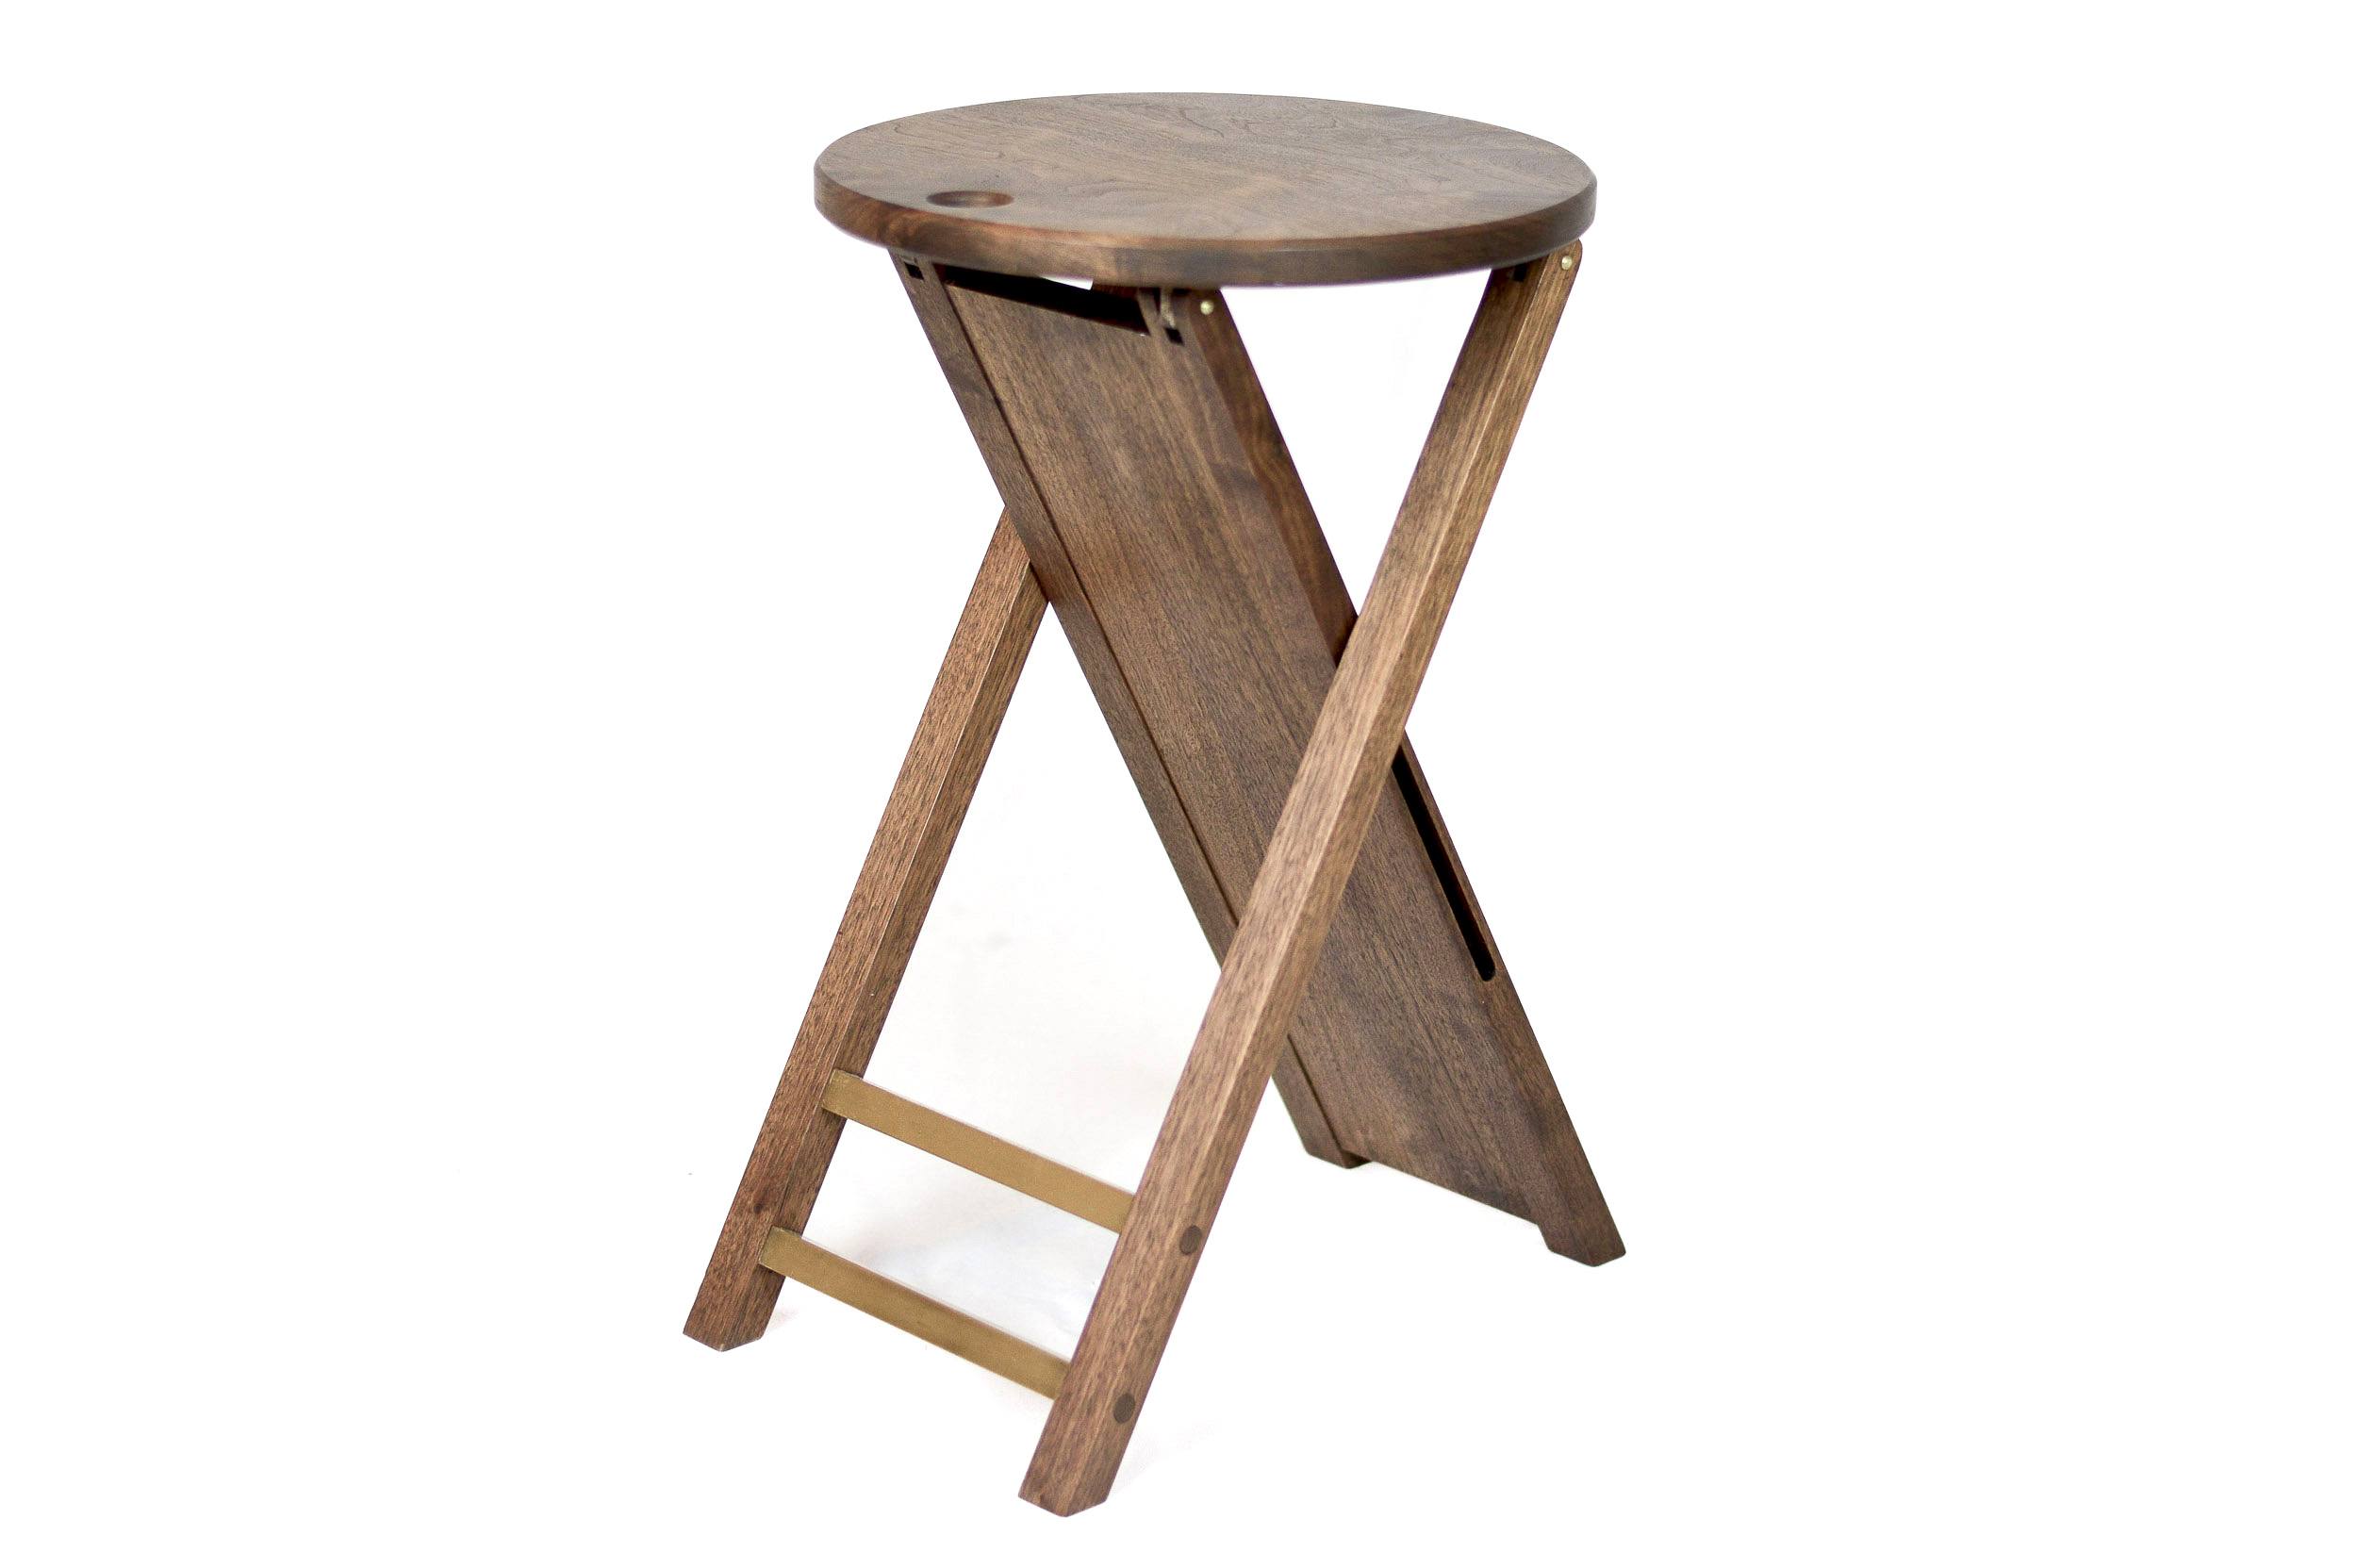 Walnut and brass folding stool